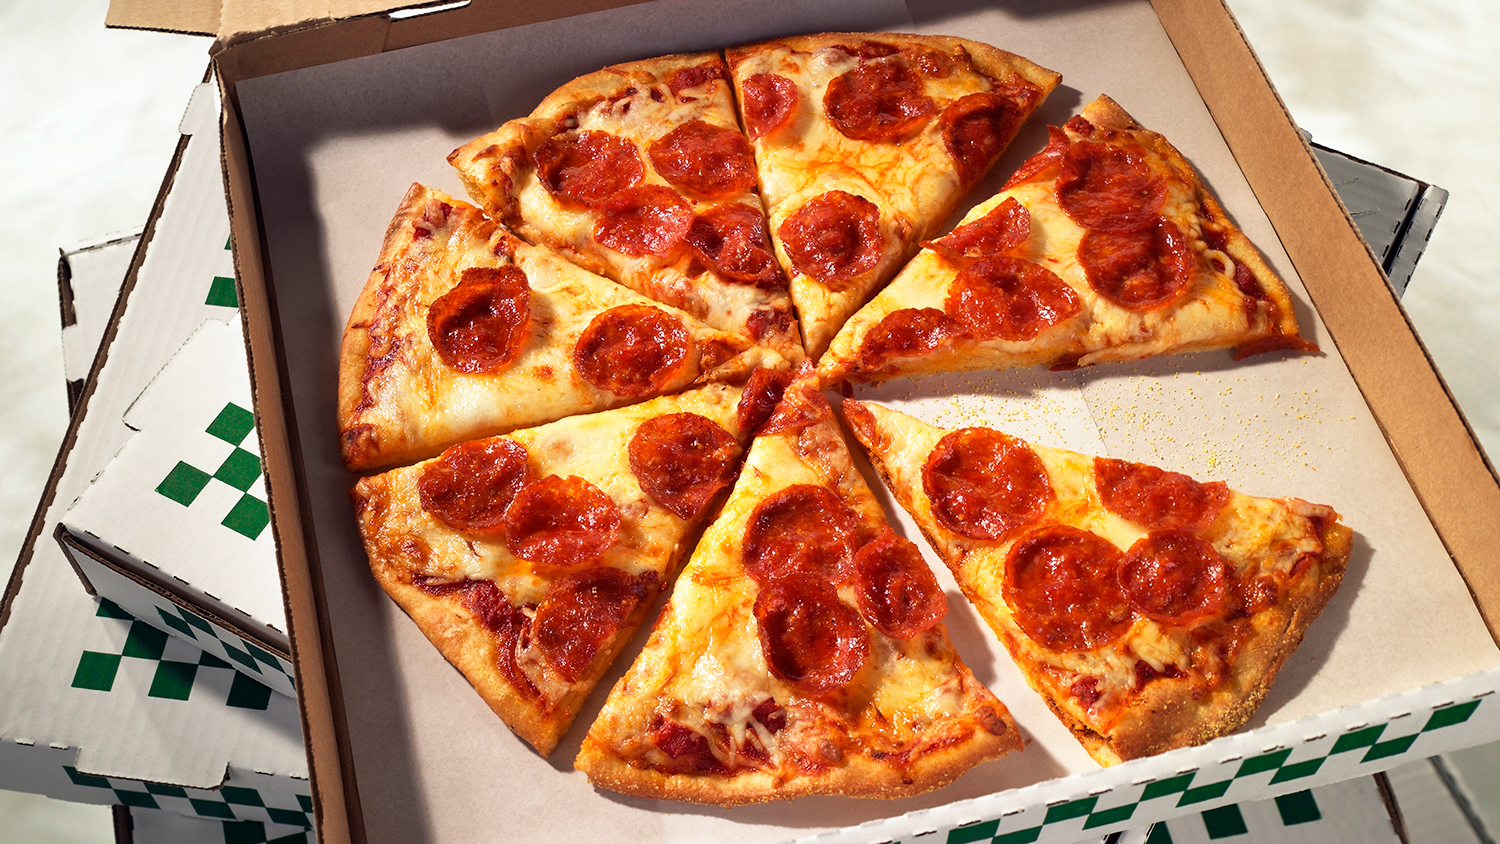 delta airlines orders pizza for customers